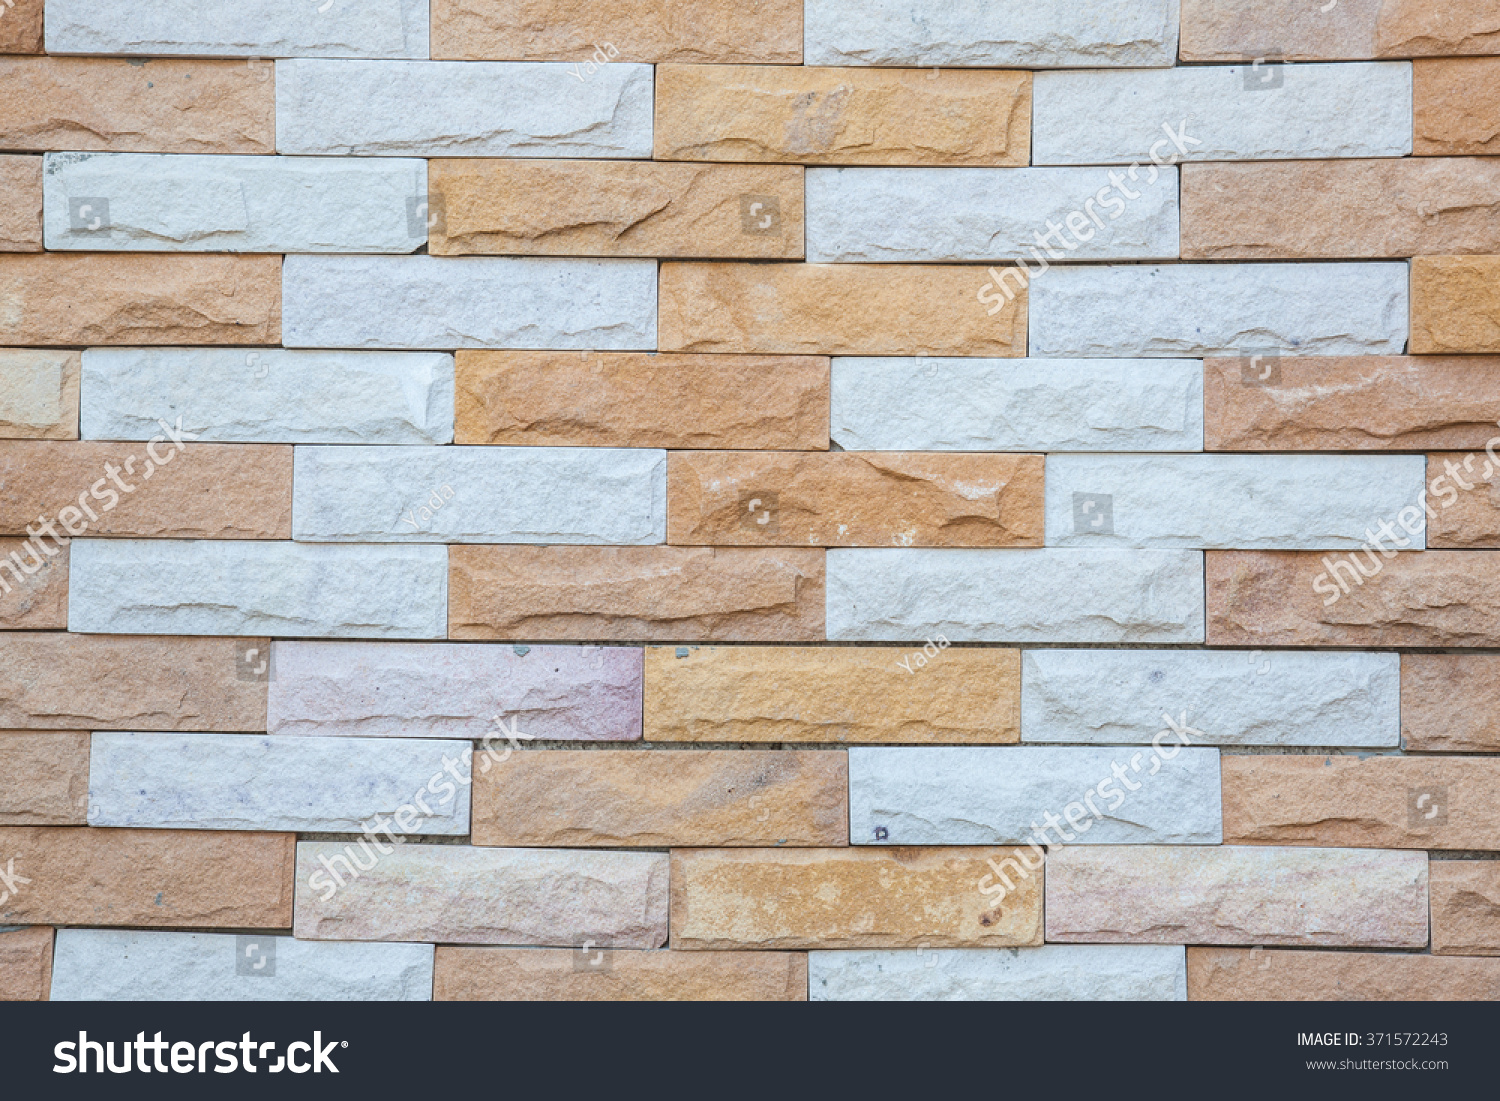 Sandstone tiles exterior wall background stock photo for Exterior background